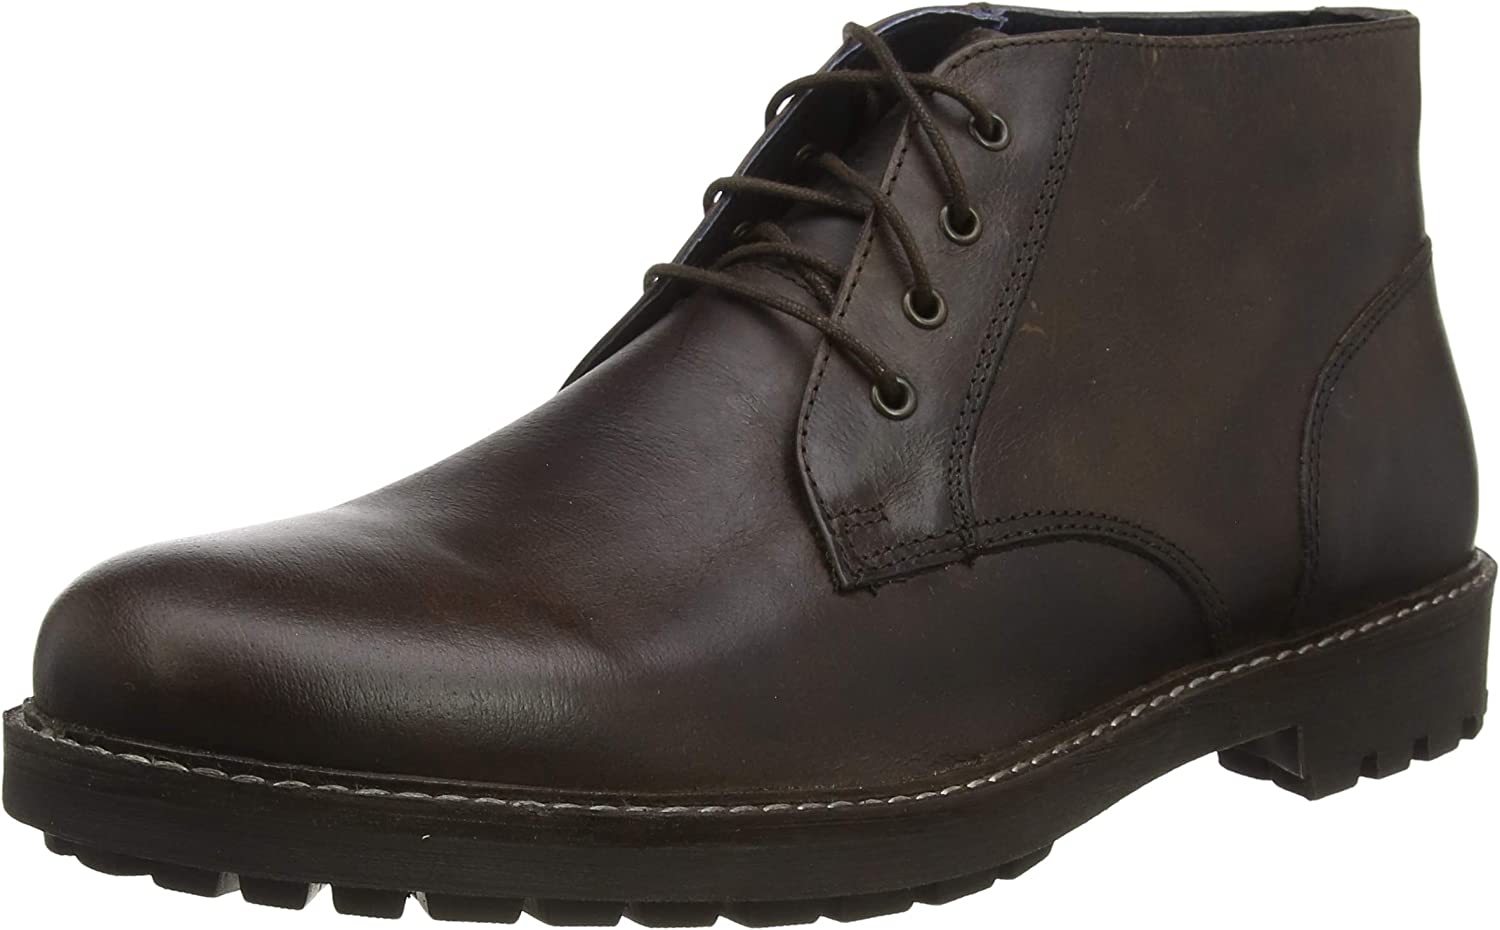 Red Tape Men's Langdale Boots ご予約品 2020春夏新作 Chukka